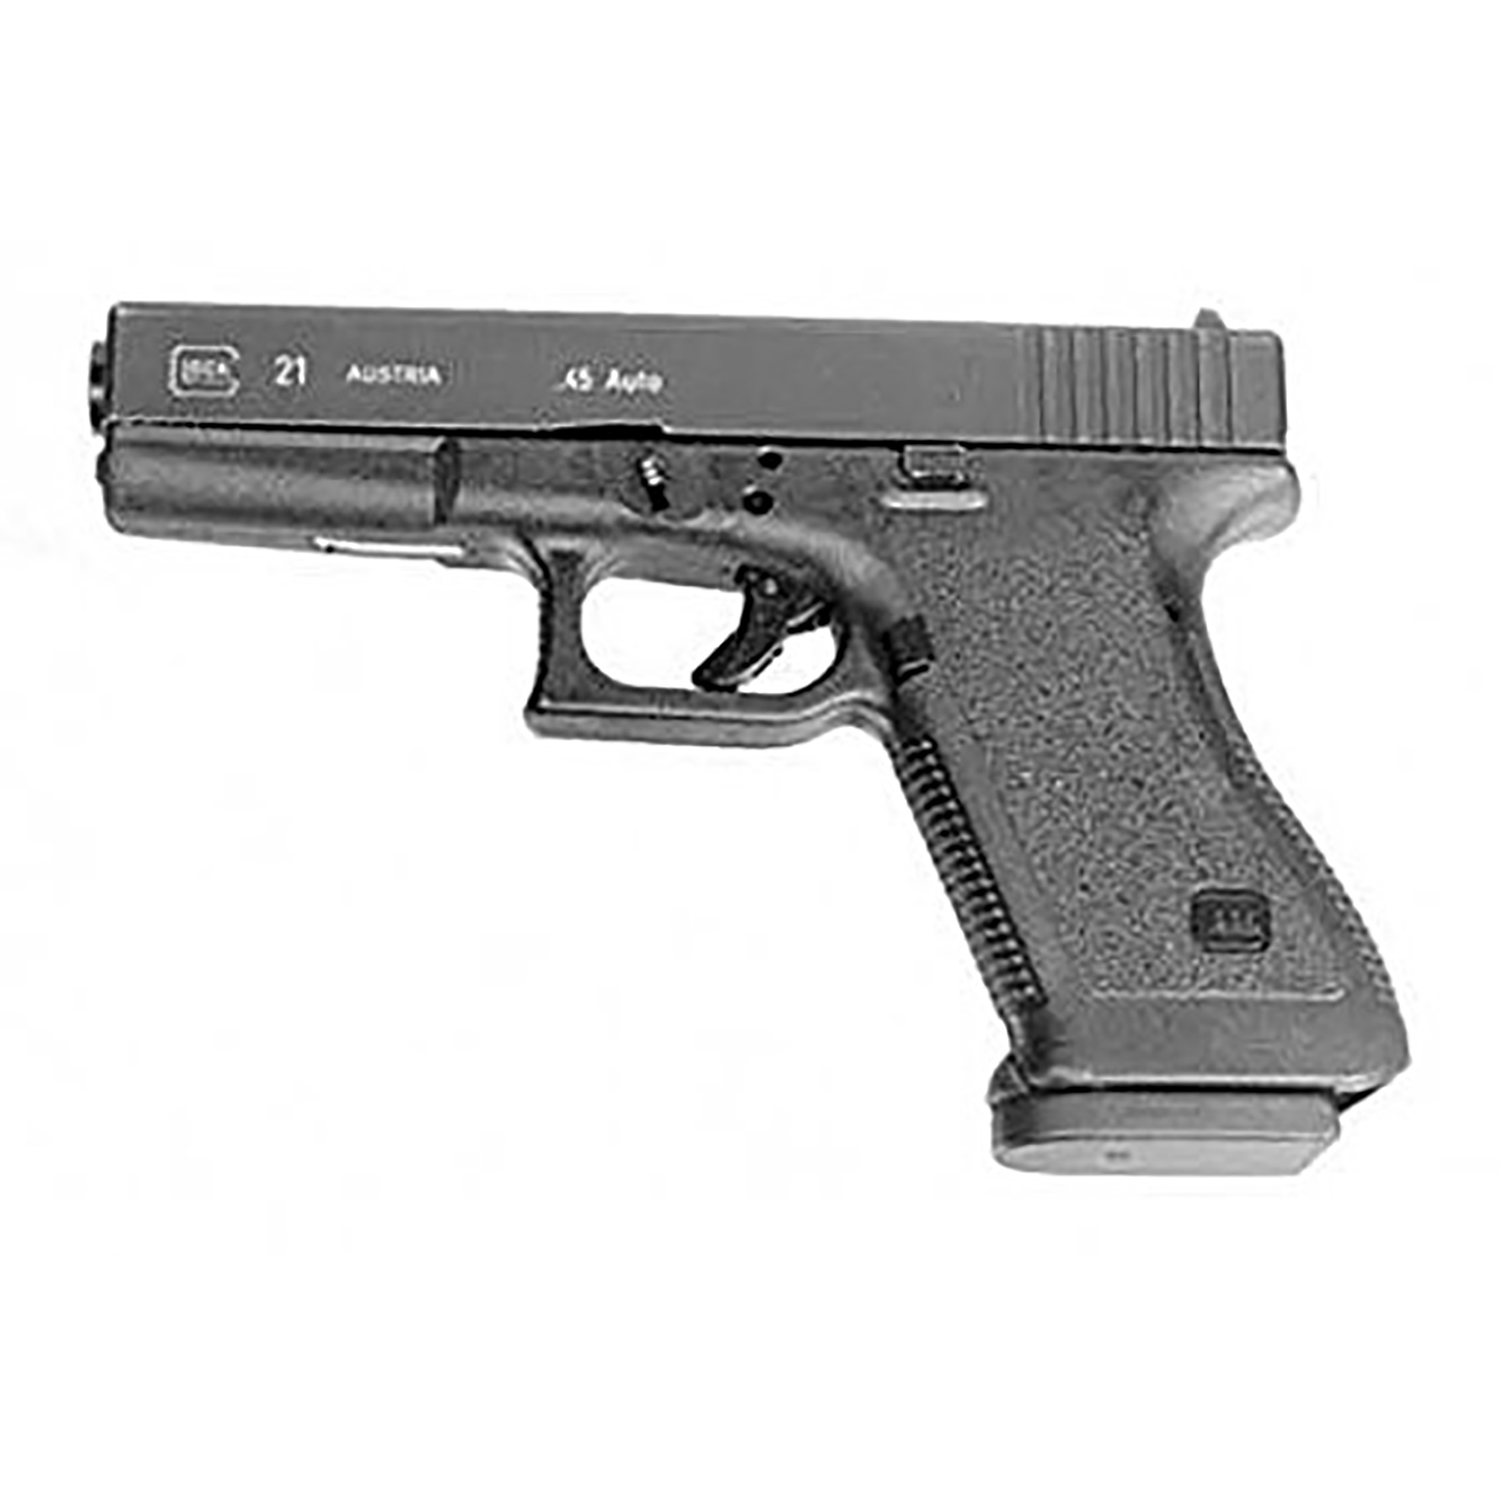 Pearce Grip PG 2021 Grip Enhancer for Glock 20 and 21